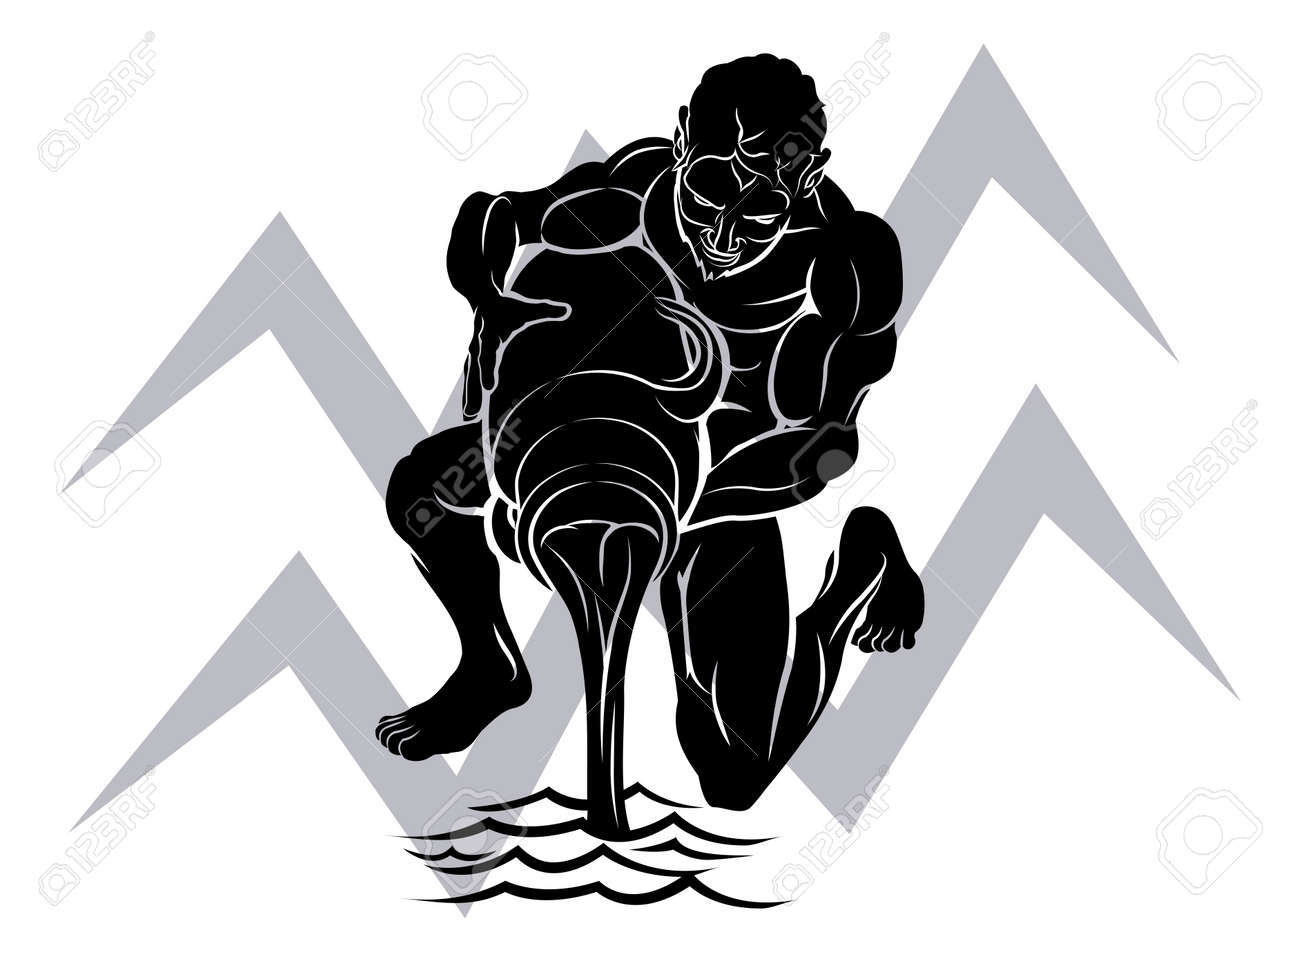 Illustration Of Aquarius The Water Bearer Or Carrier Zodiac ...